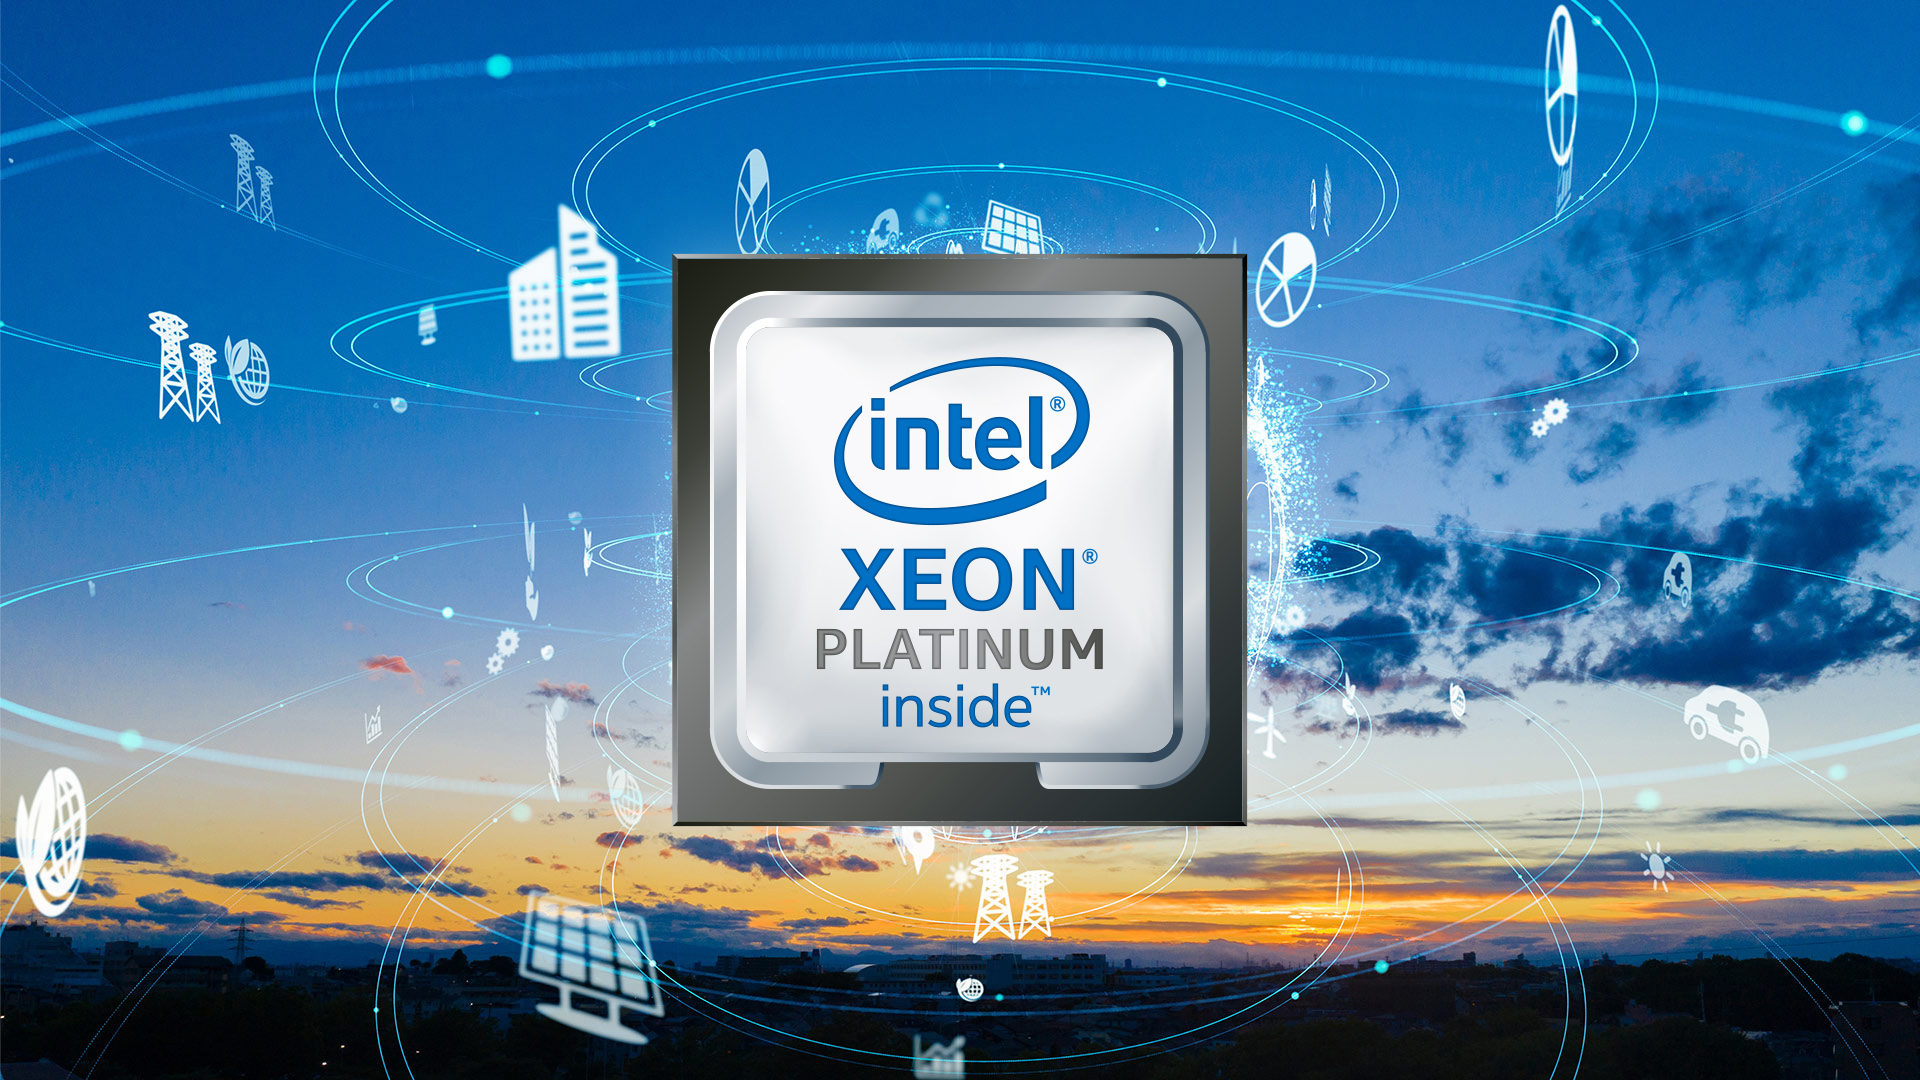 Image of the Intel Xeon Platinum logo in front of a cloudy sky